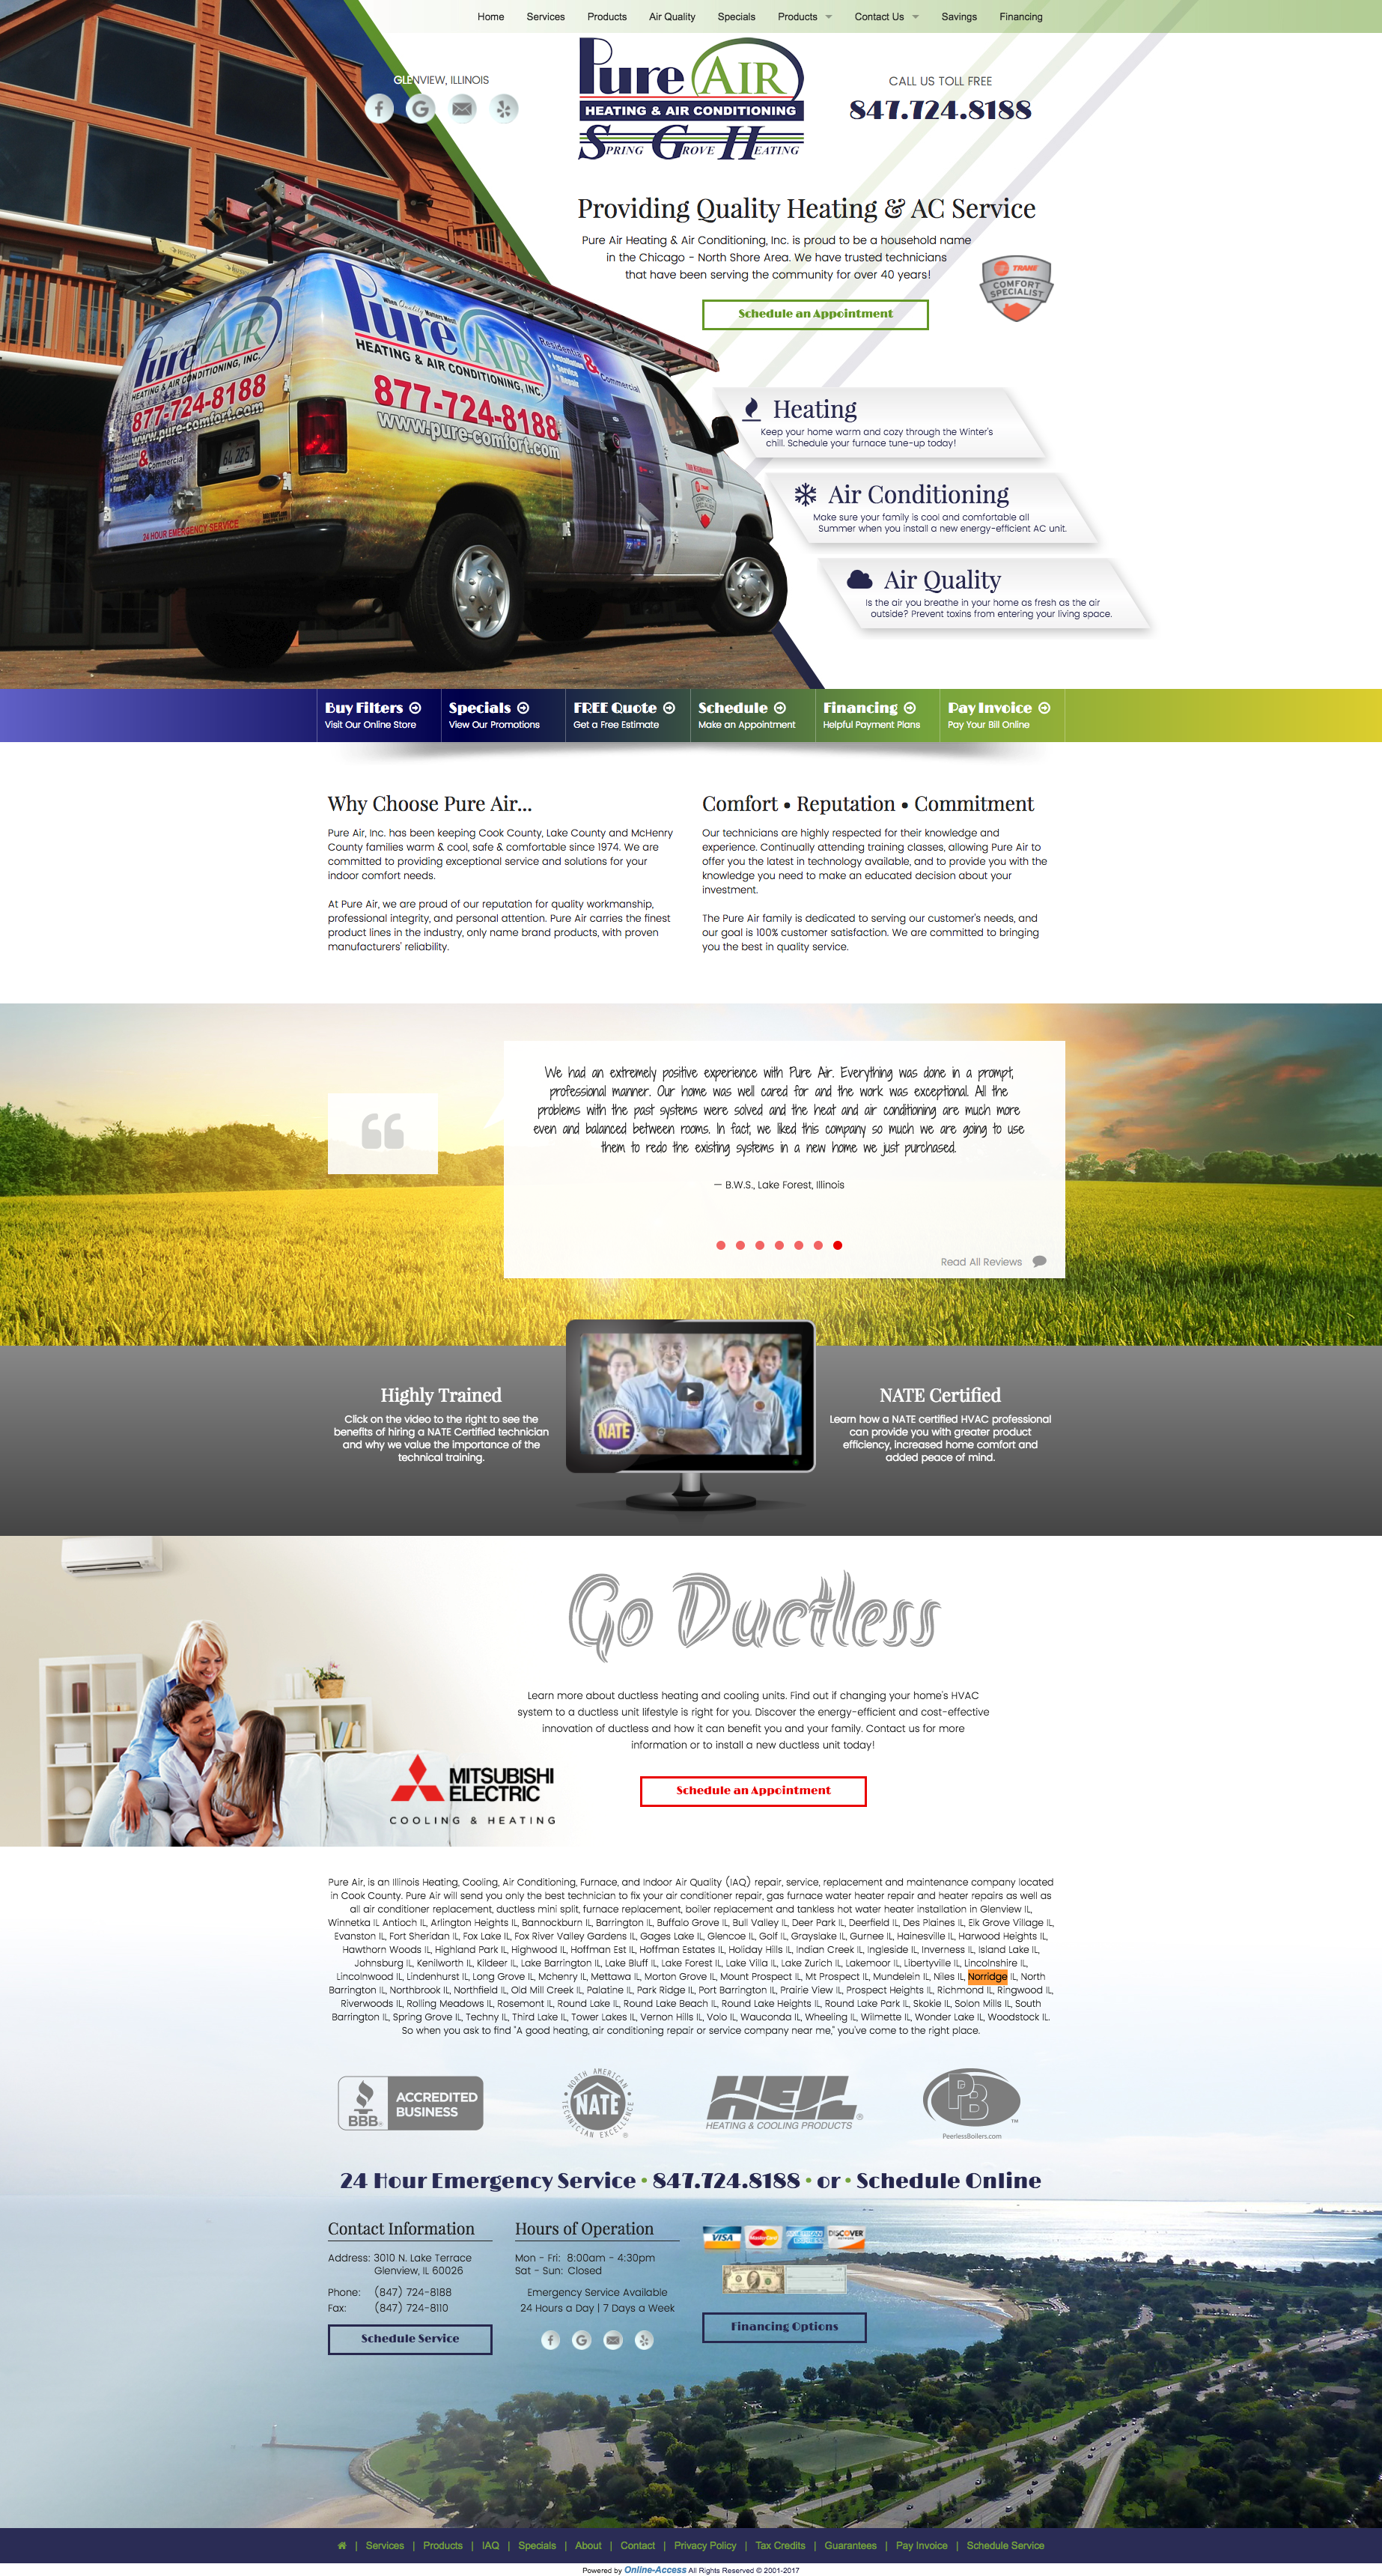 Company Branded Heating And Air Conditioning Website Design In